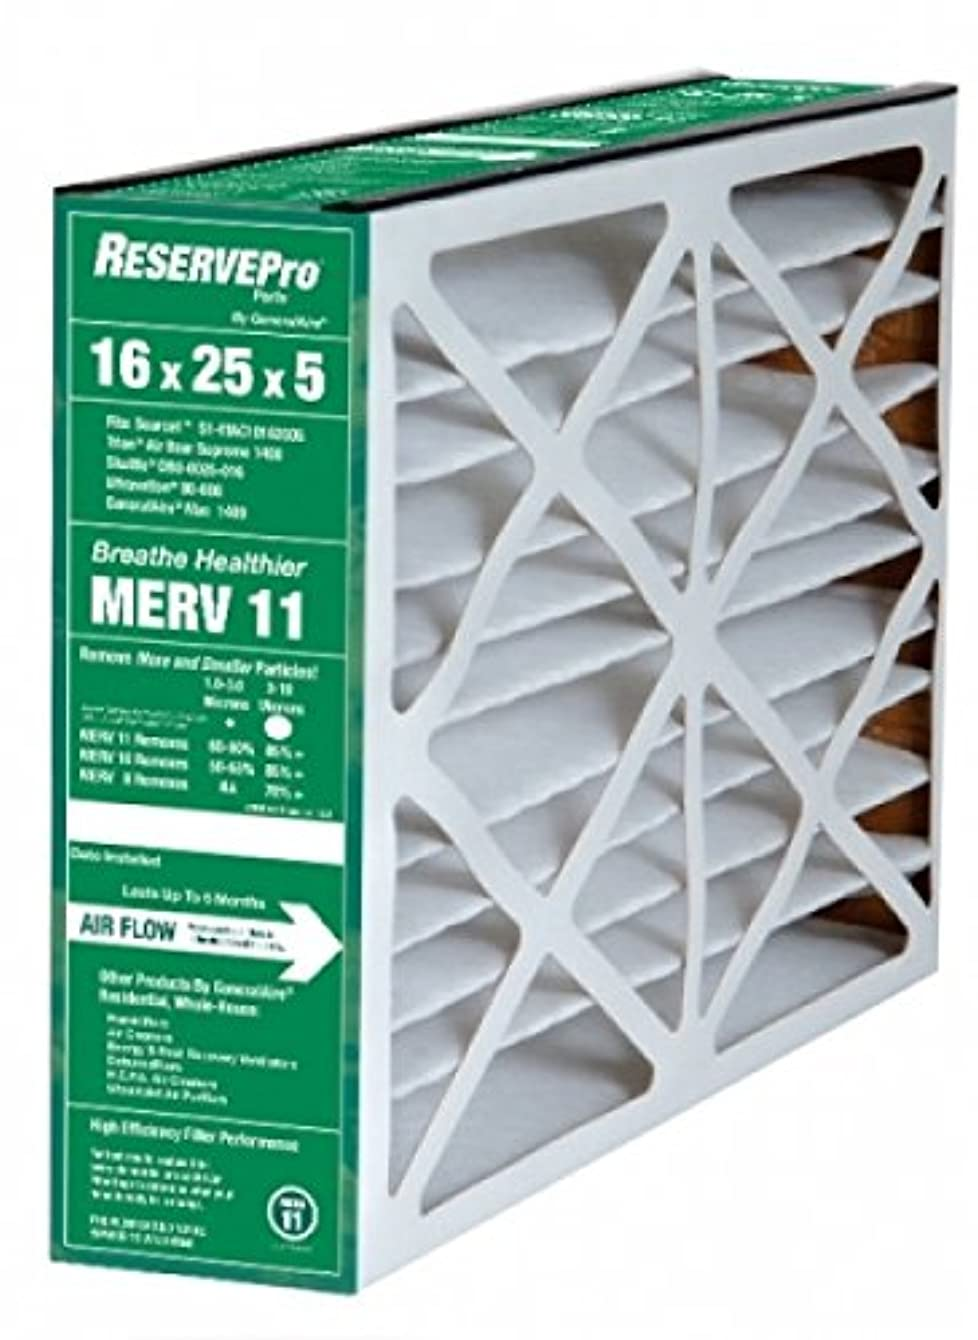 ReservePro 16x25x5 # 4511 furnace filter, Actual Size:15 5/8